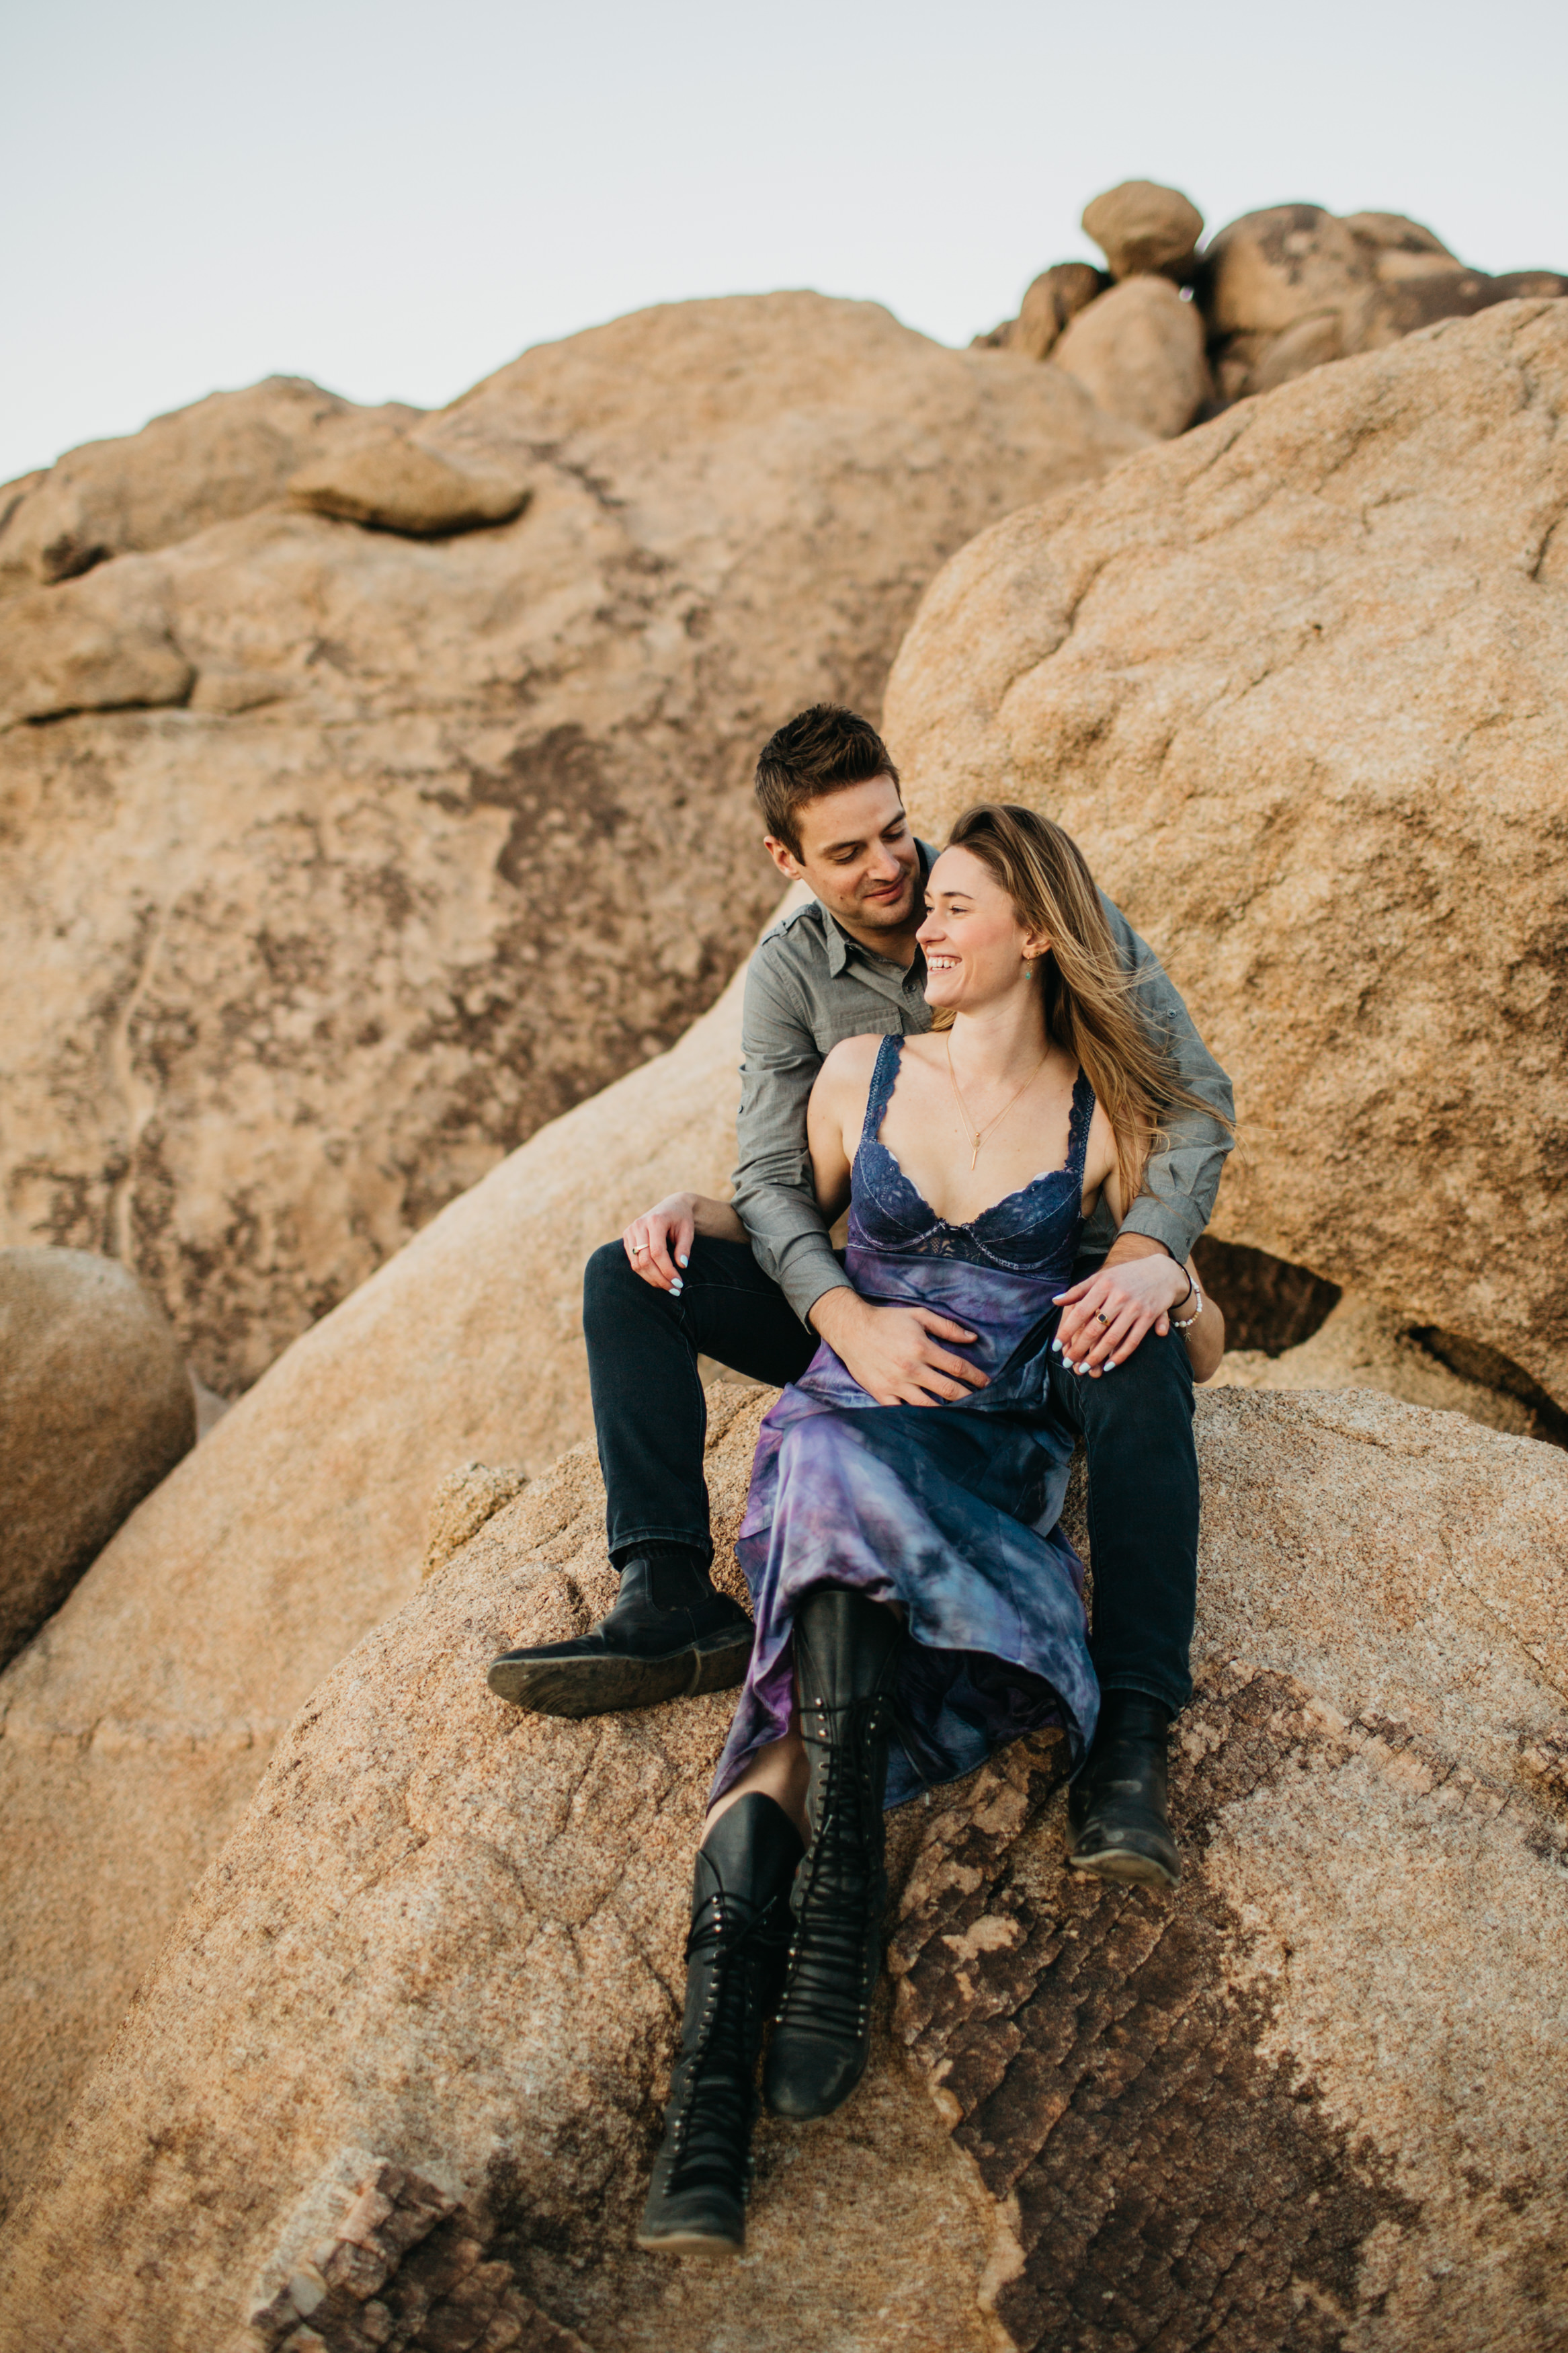 Joshua Tree National Park Elopement Love Engagement